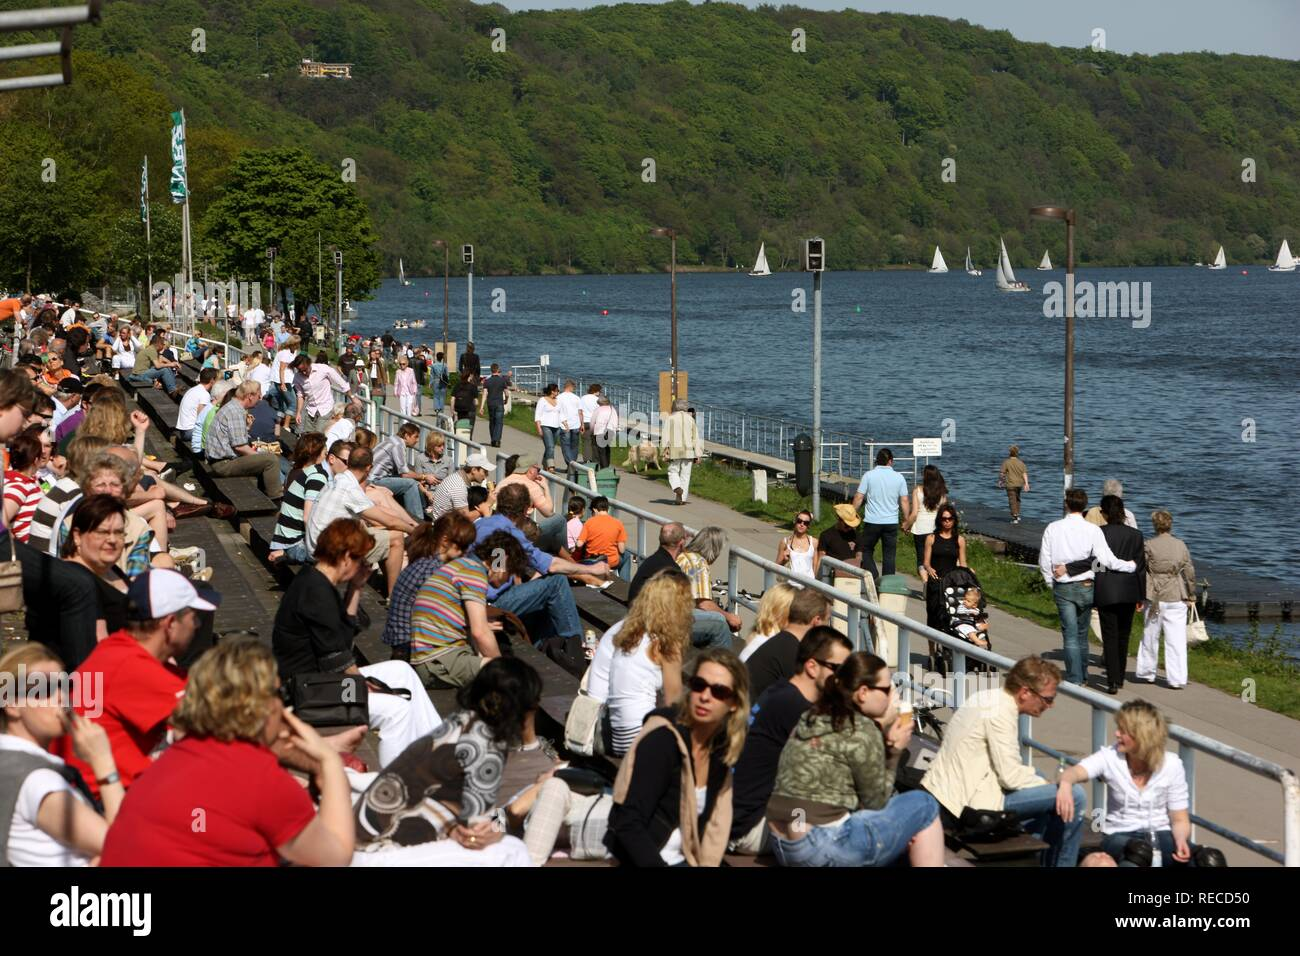 People in the summer on the stands of the regatta course on the Baldeneysee storage lake, river Ruhr, Essen - Stock Image